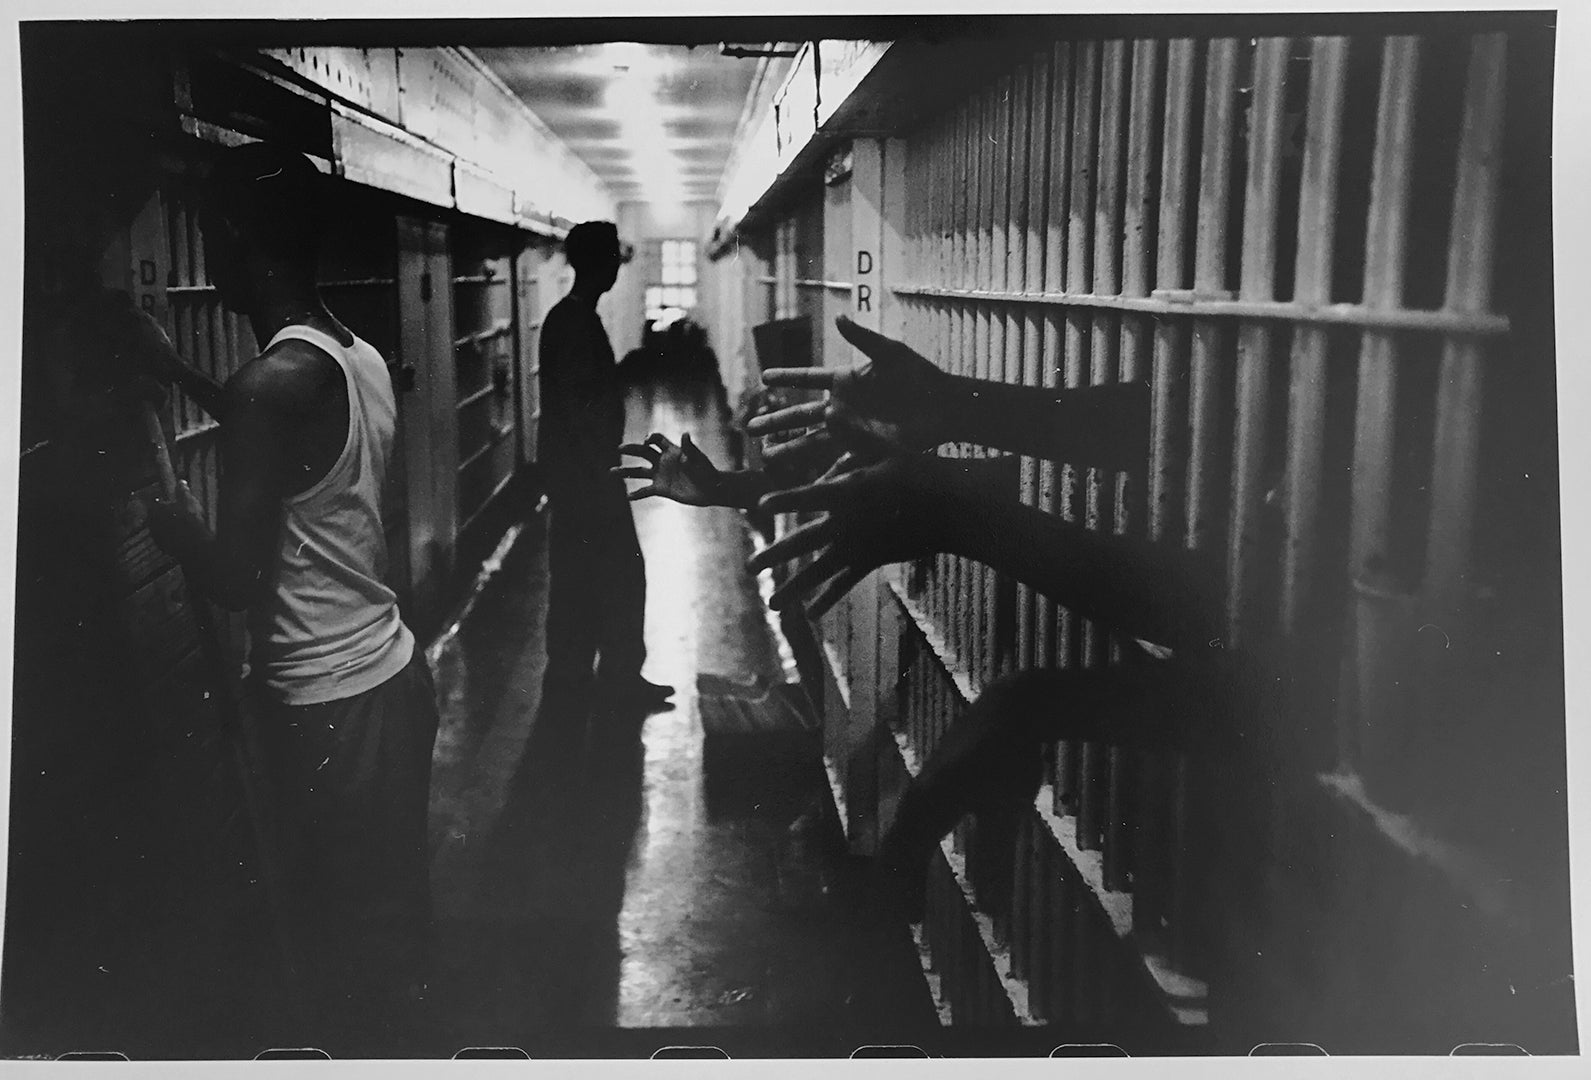 City prison new orleans vintage black and white documentary civil rights photo